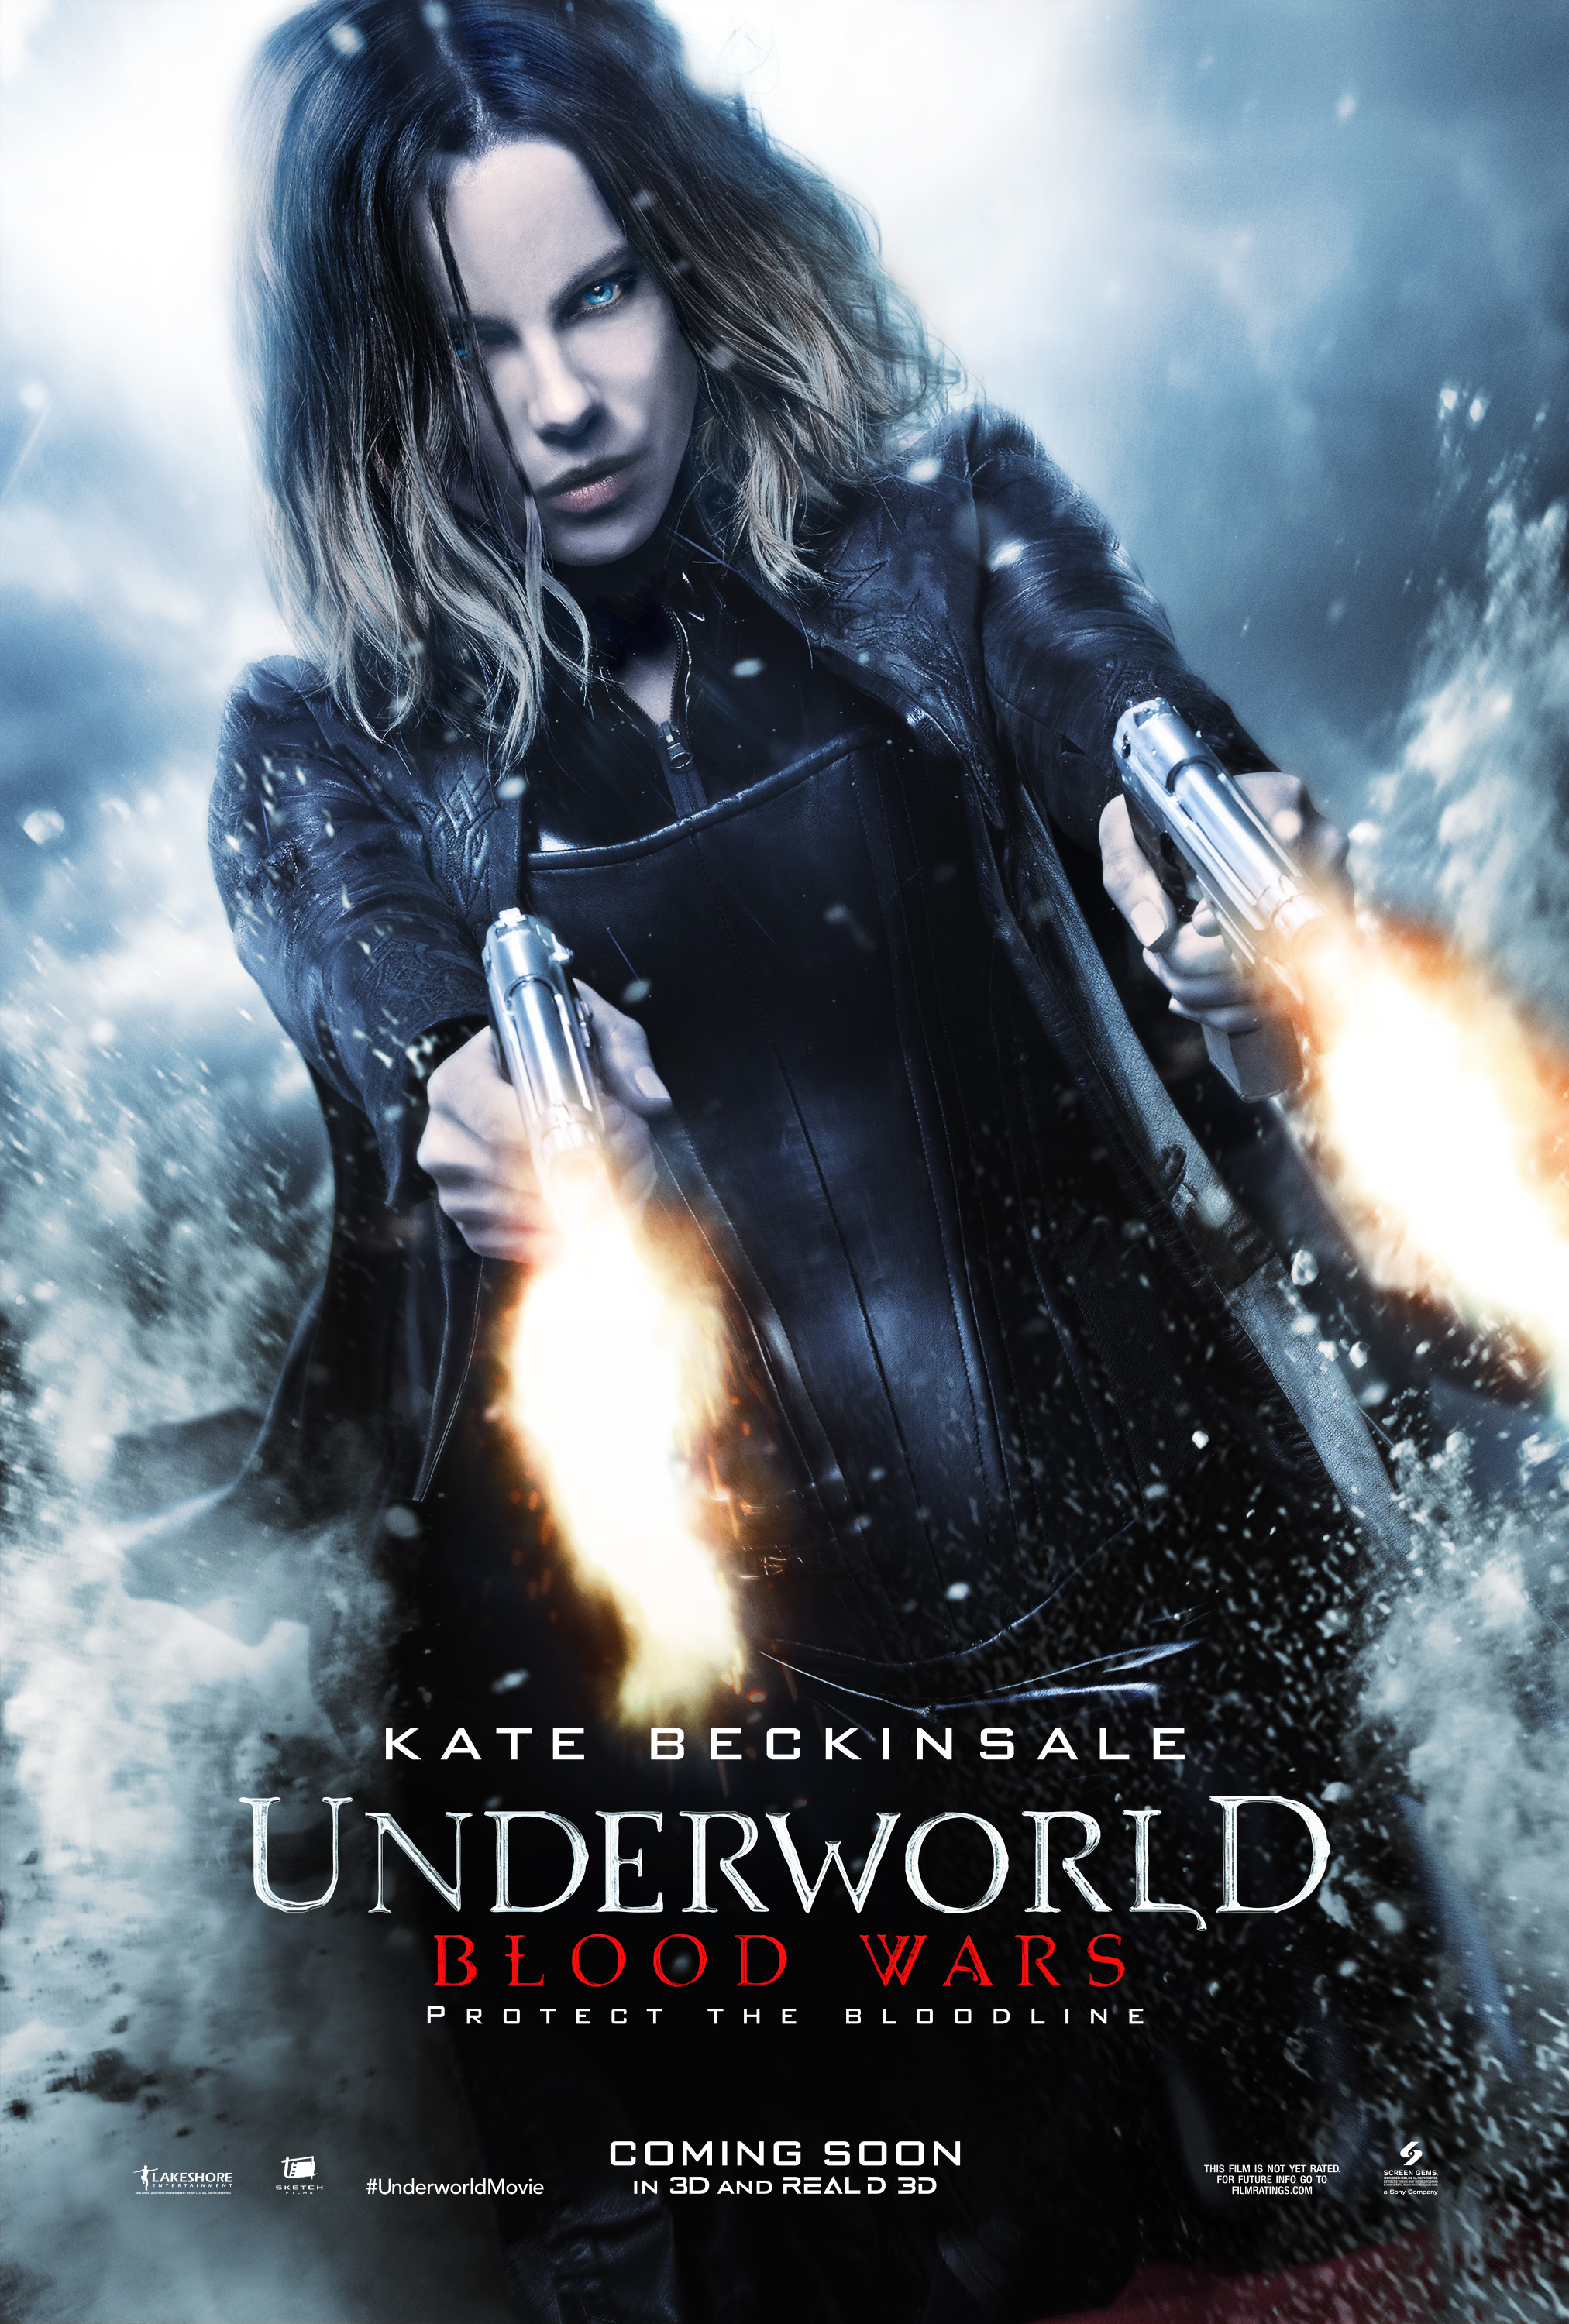 Kate Beckinsale Fires At Will In Dynamic New Underworld: Blood Wars Poster